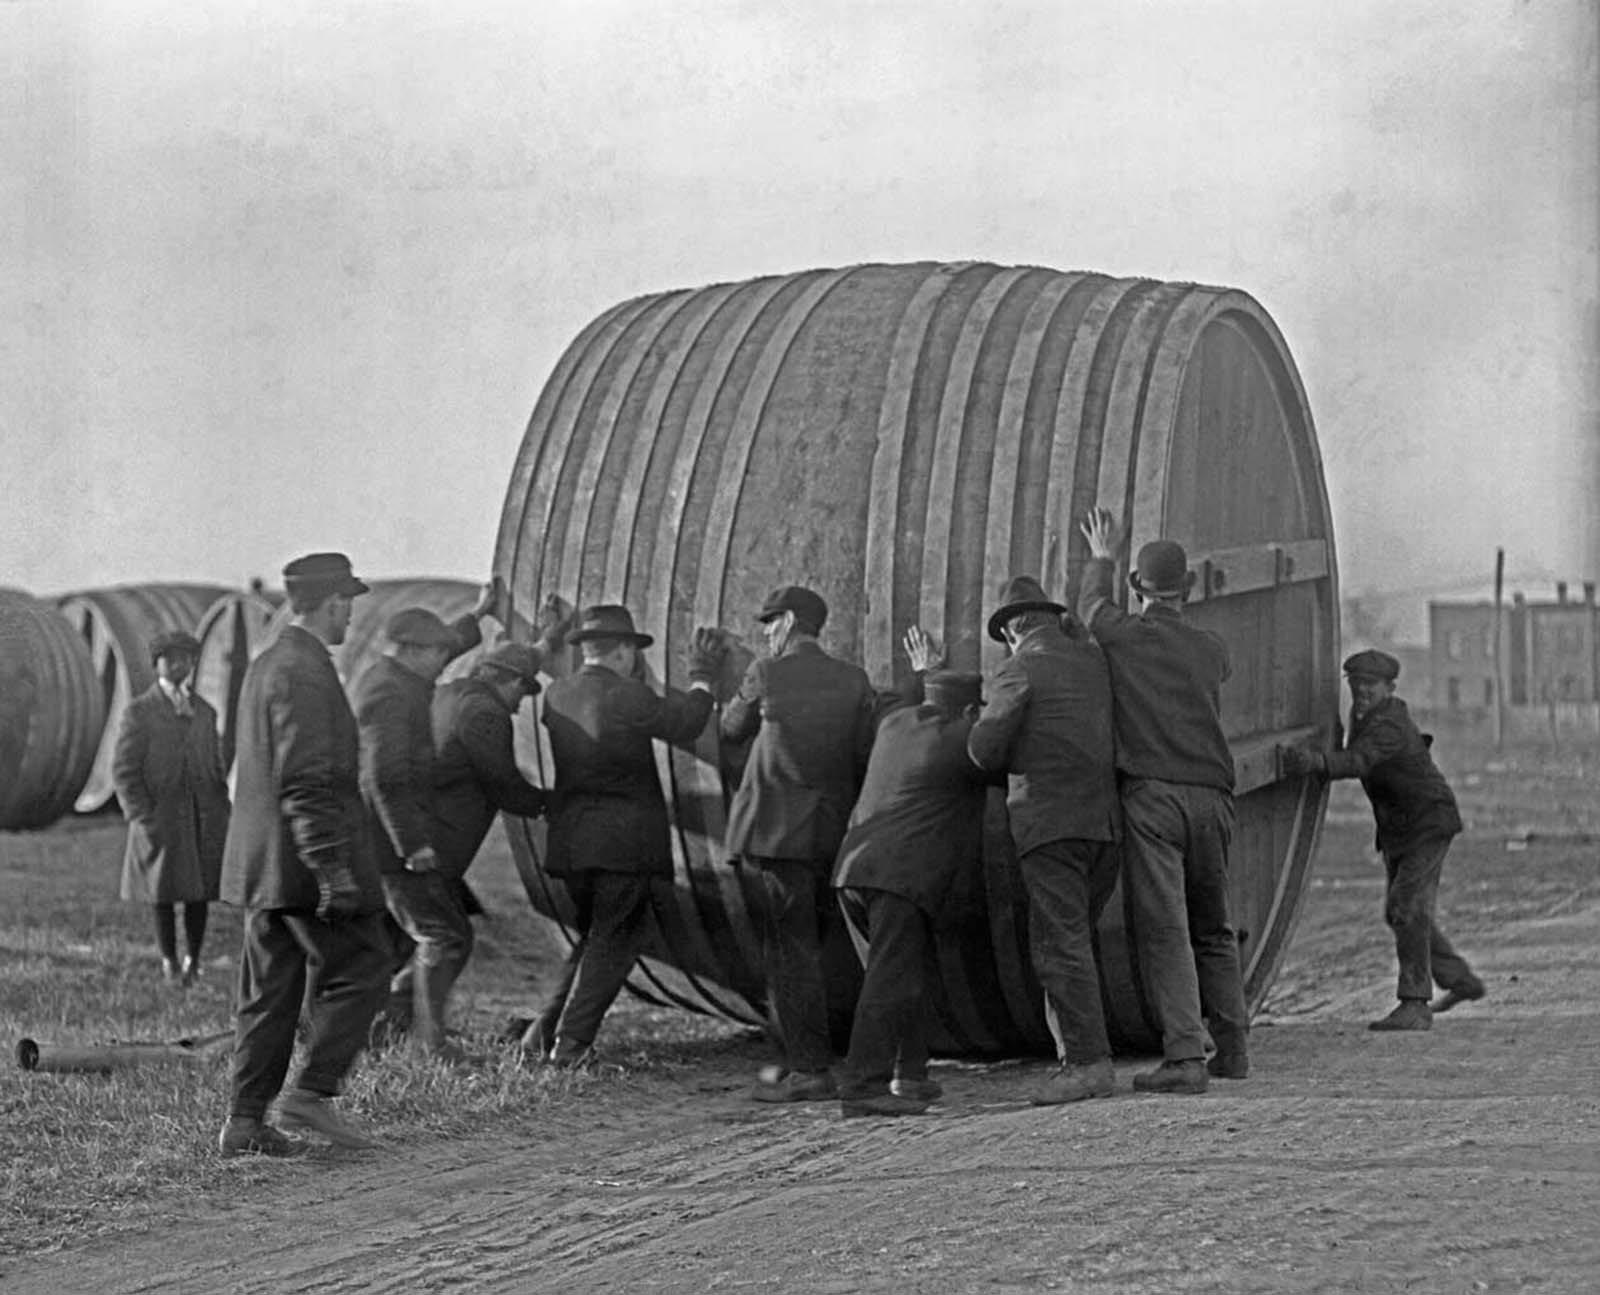 A brewery in Washington, DC, switches from brewing beer to making ice cream during Prohibition. Workers roll the giant beer vats out to make room for ice cream production equipment.